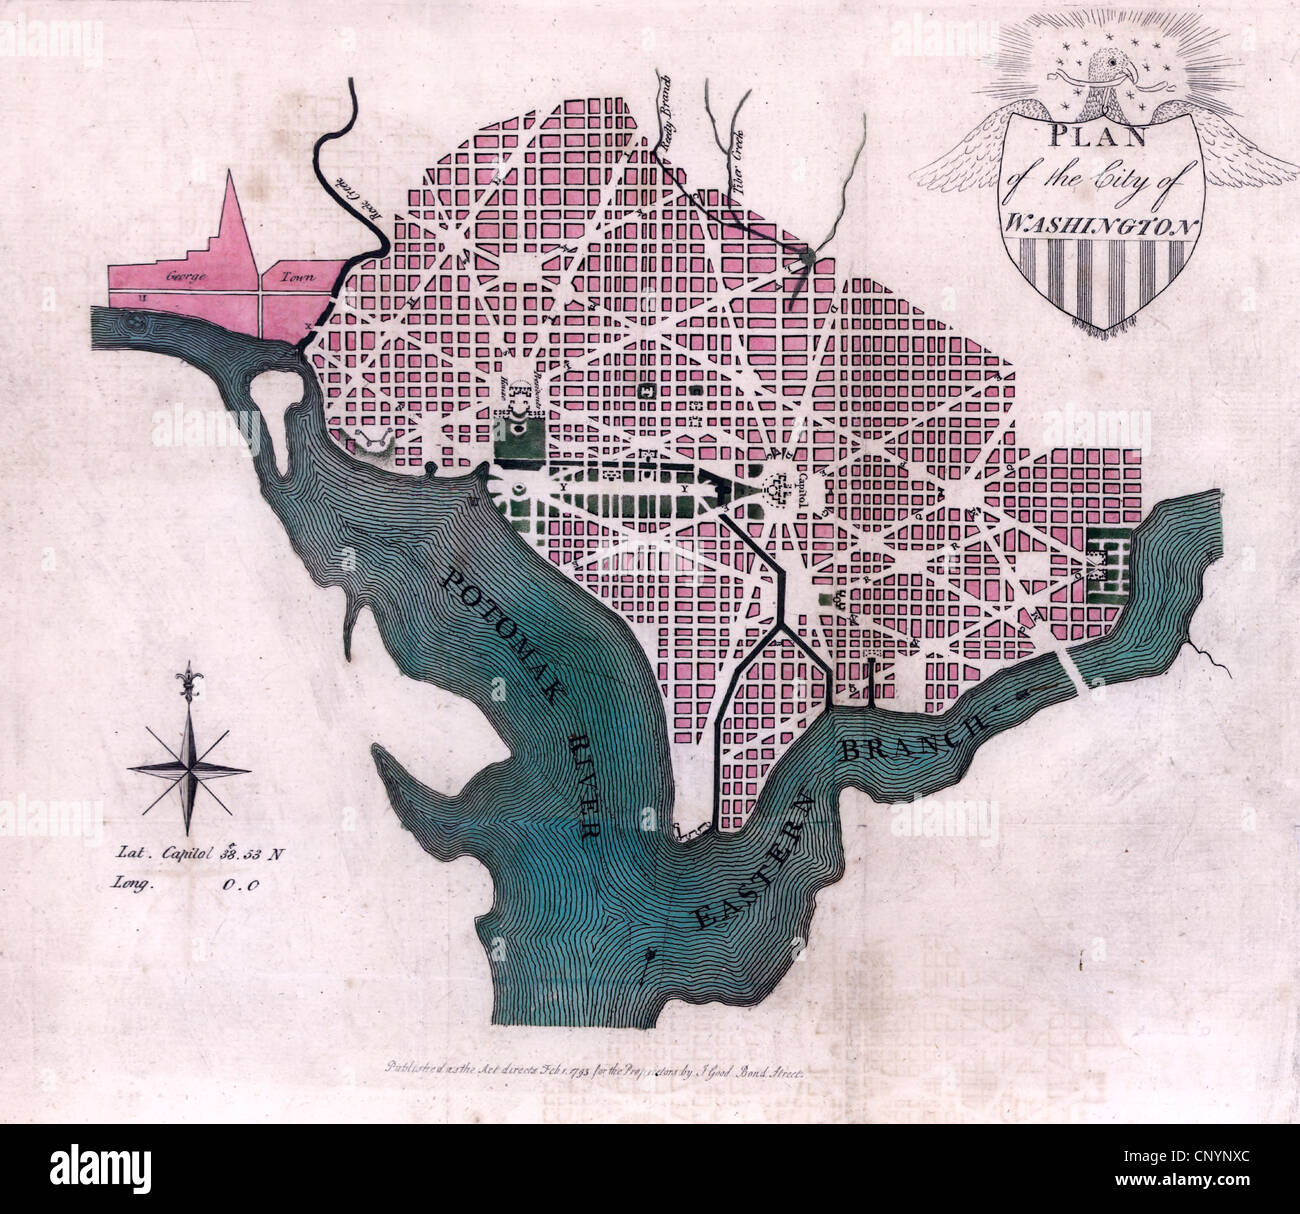 District Of Columbia Map Stockfotos & District Of Columbia Map ... on